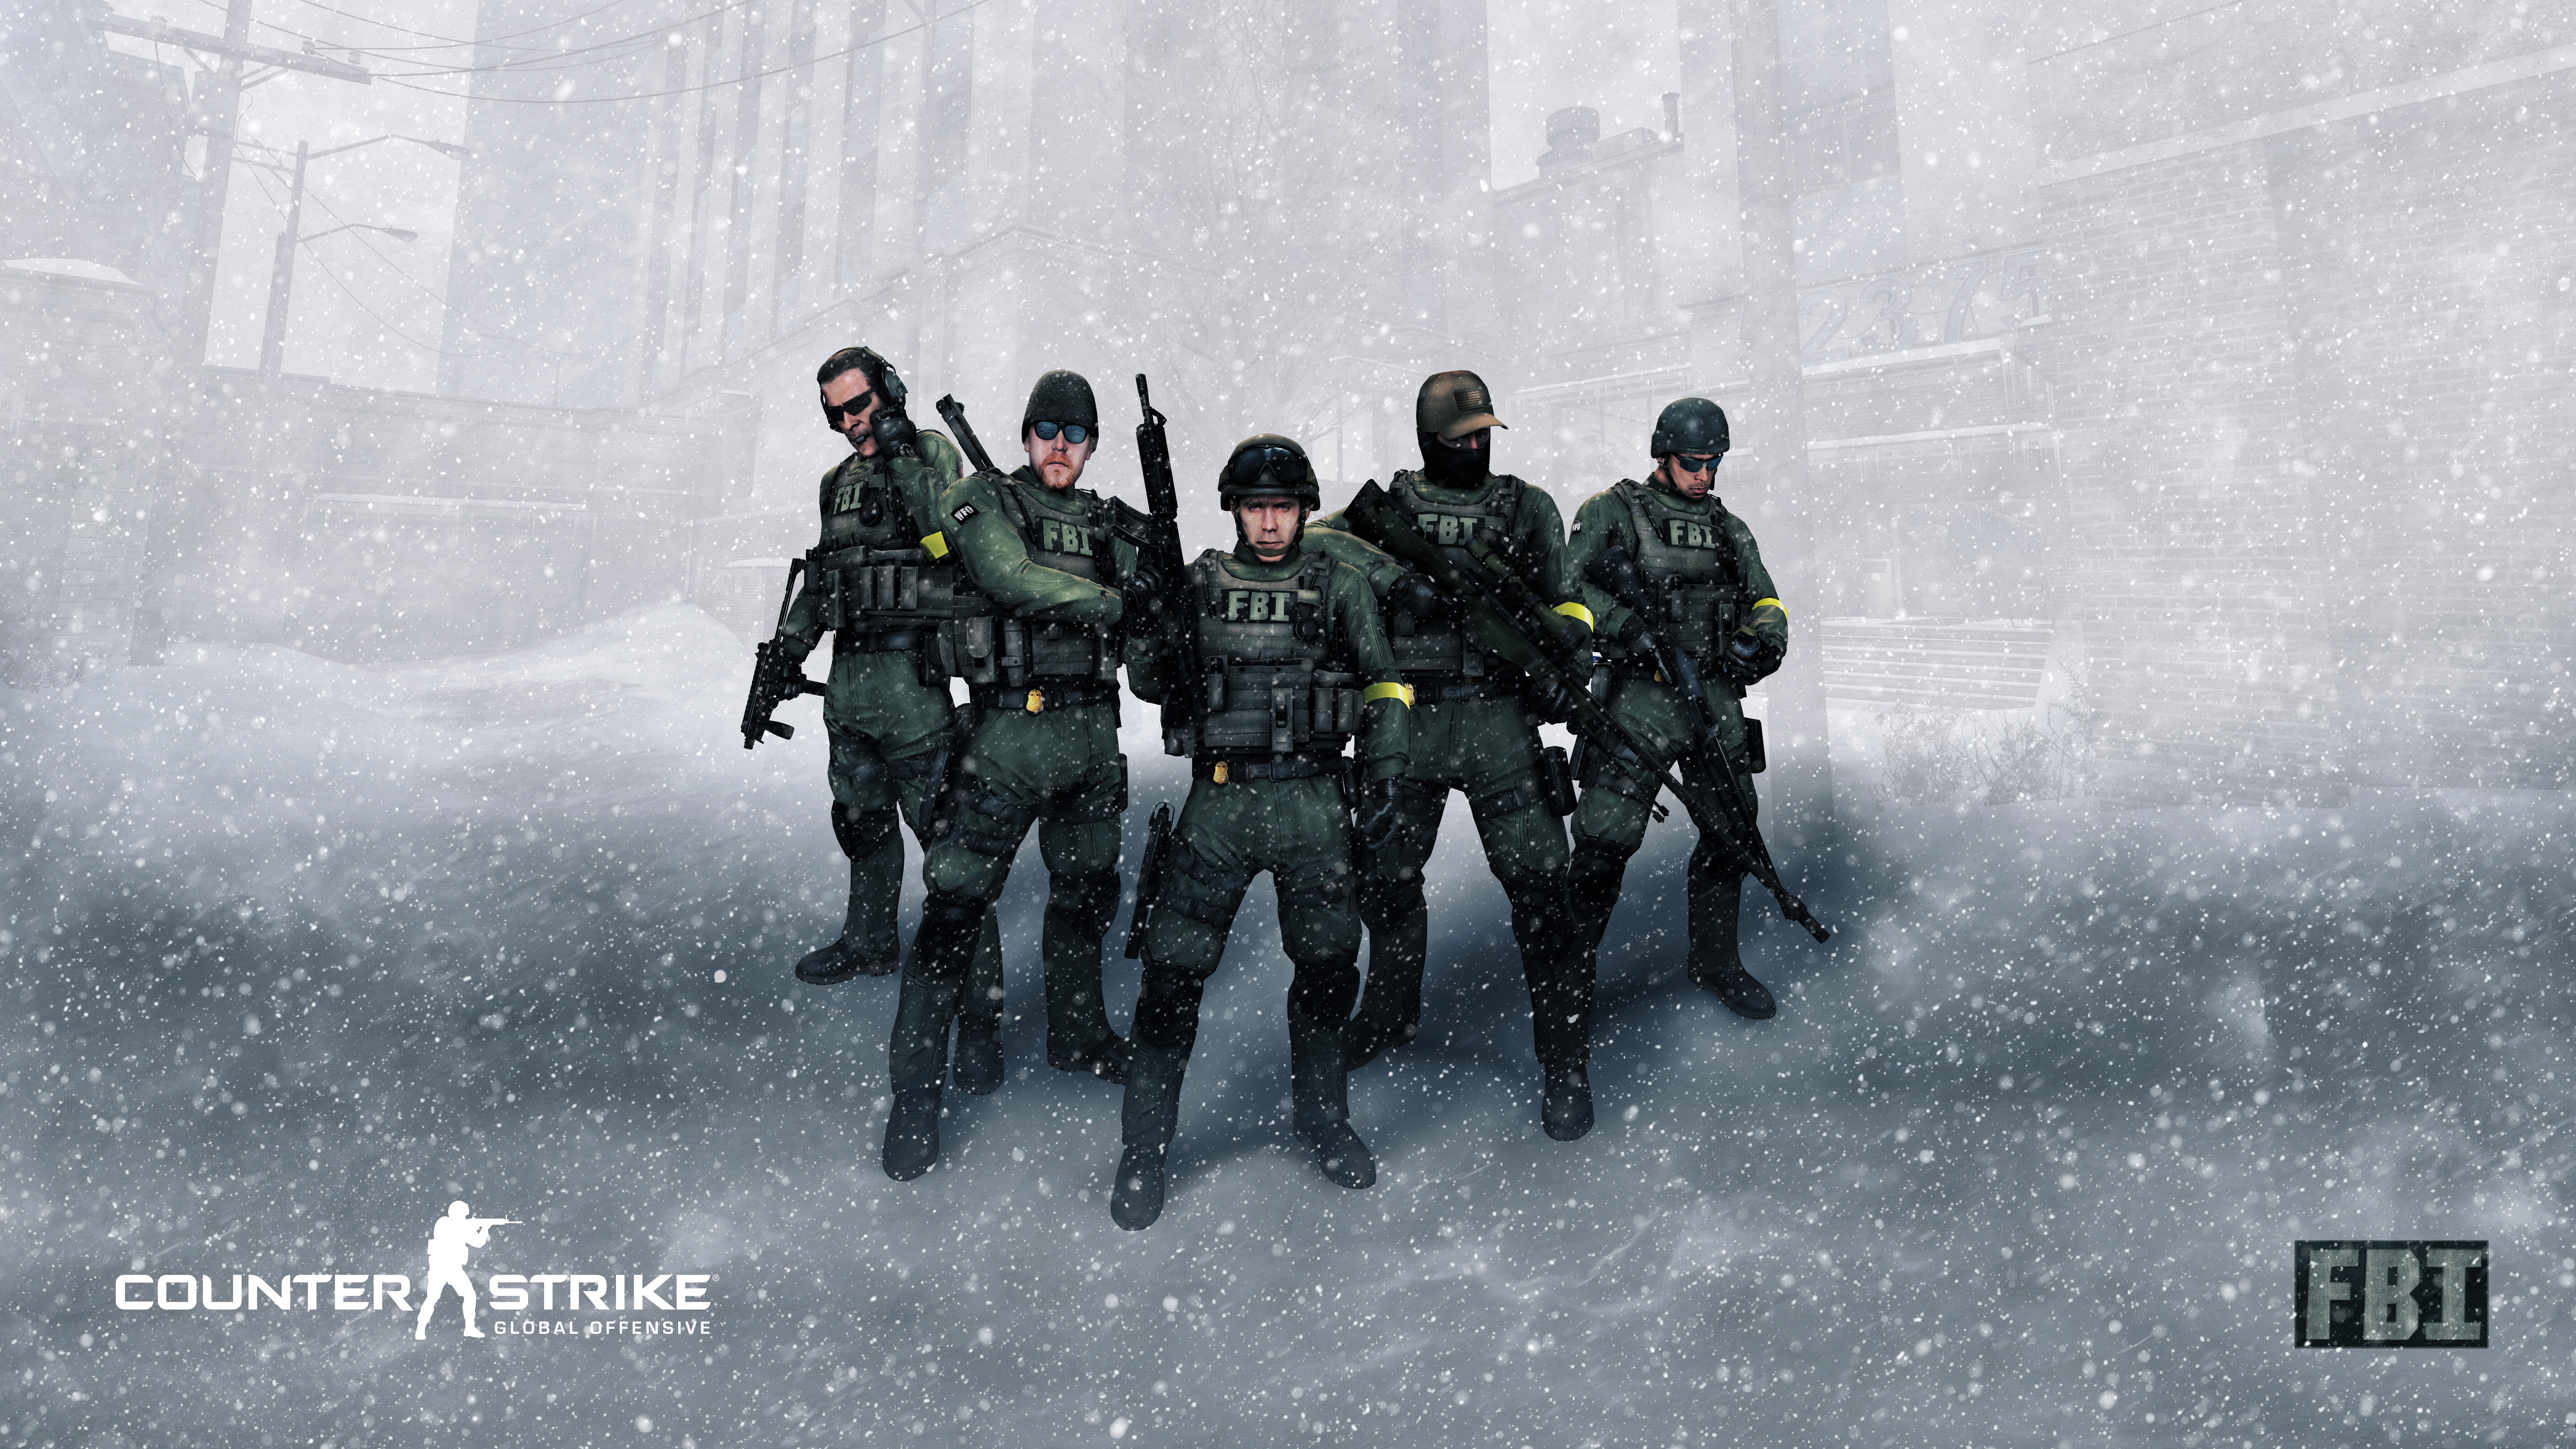 Counter Strike Global Offensive Game wallpaper 6000x3375